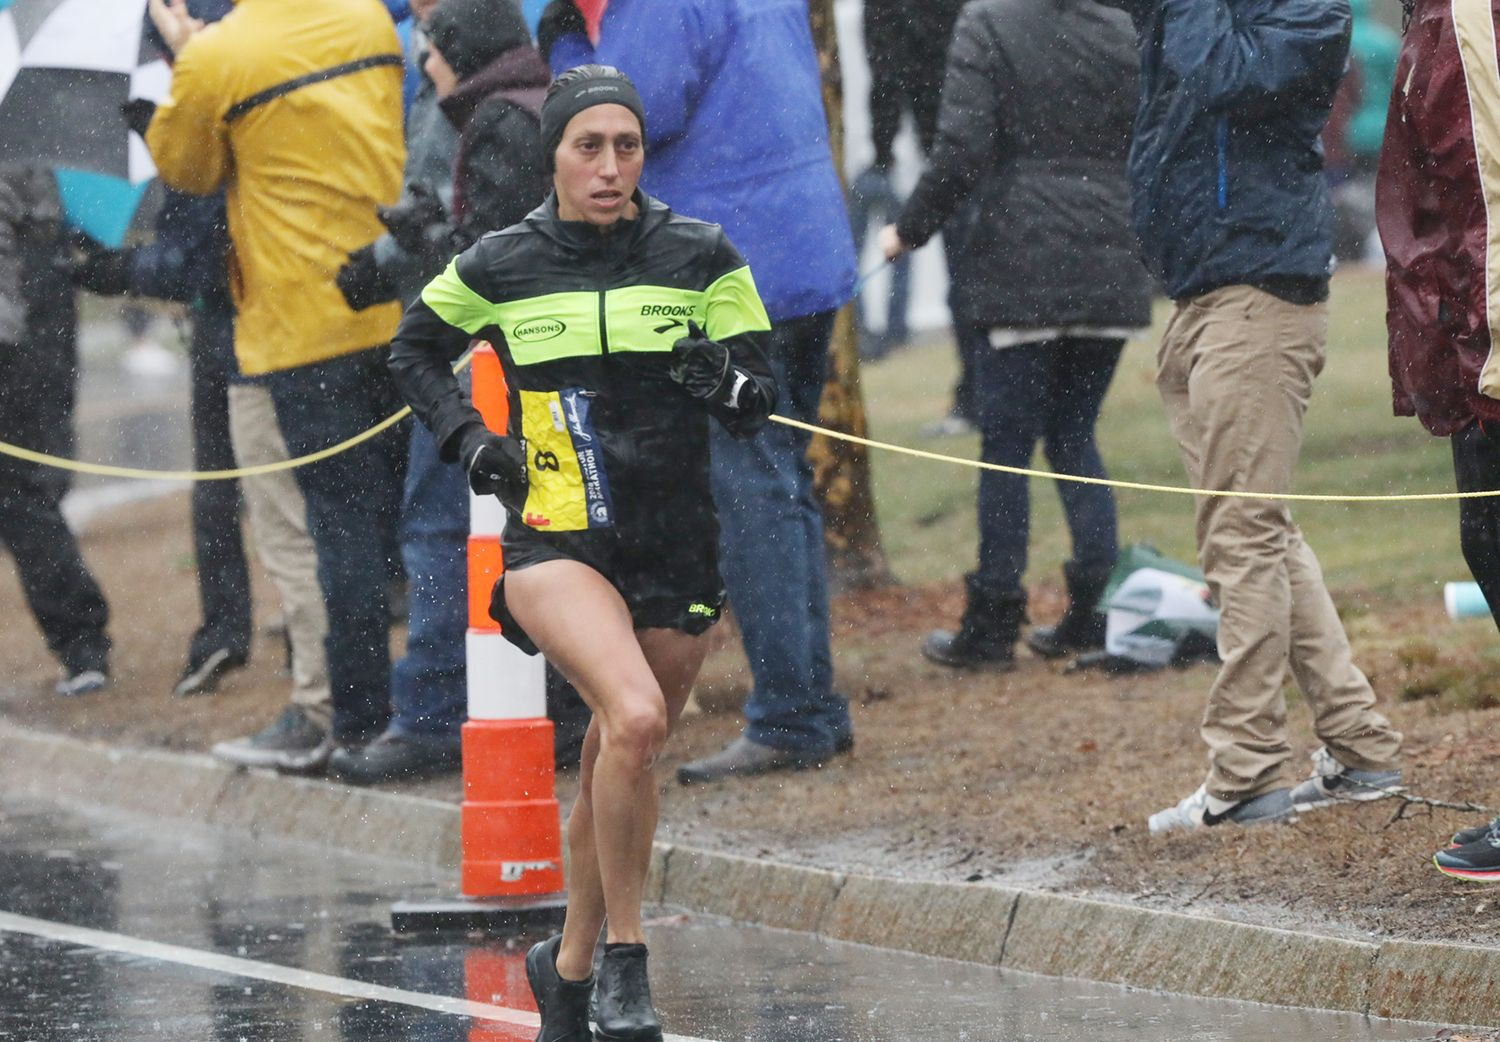 Desiree Linden